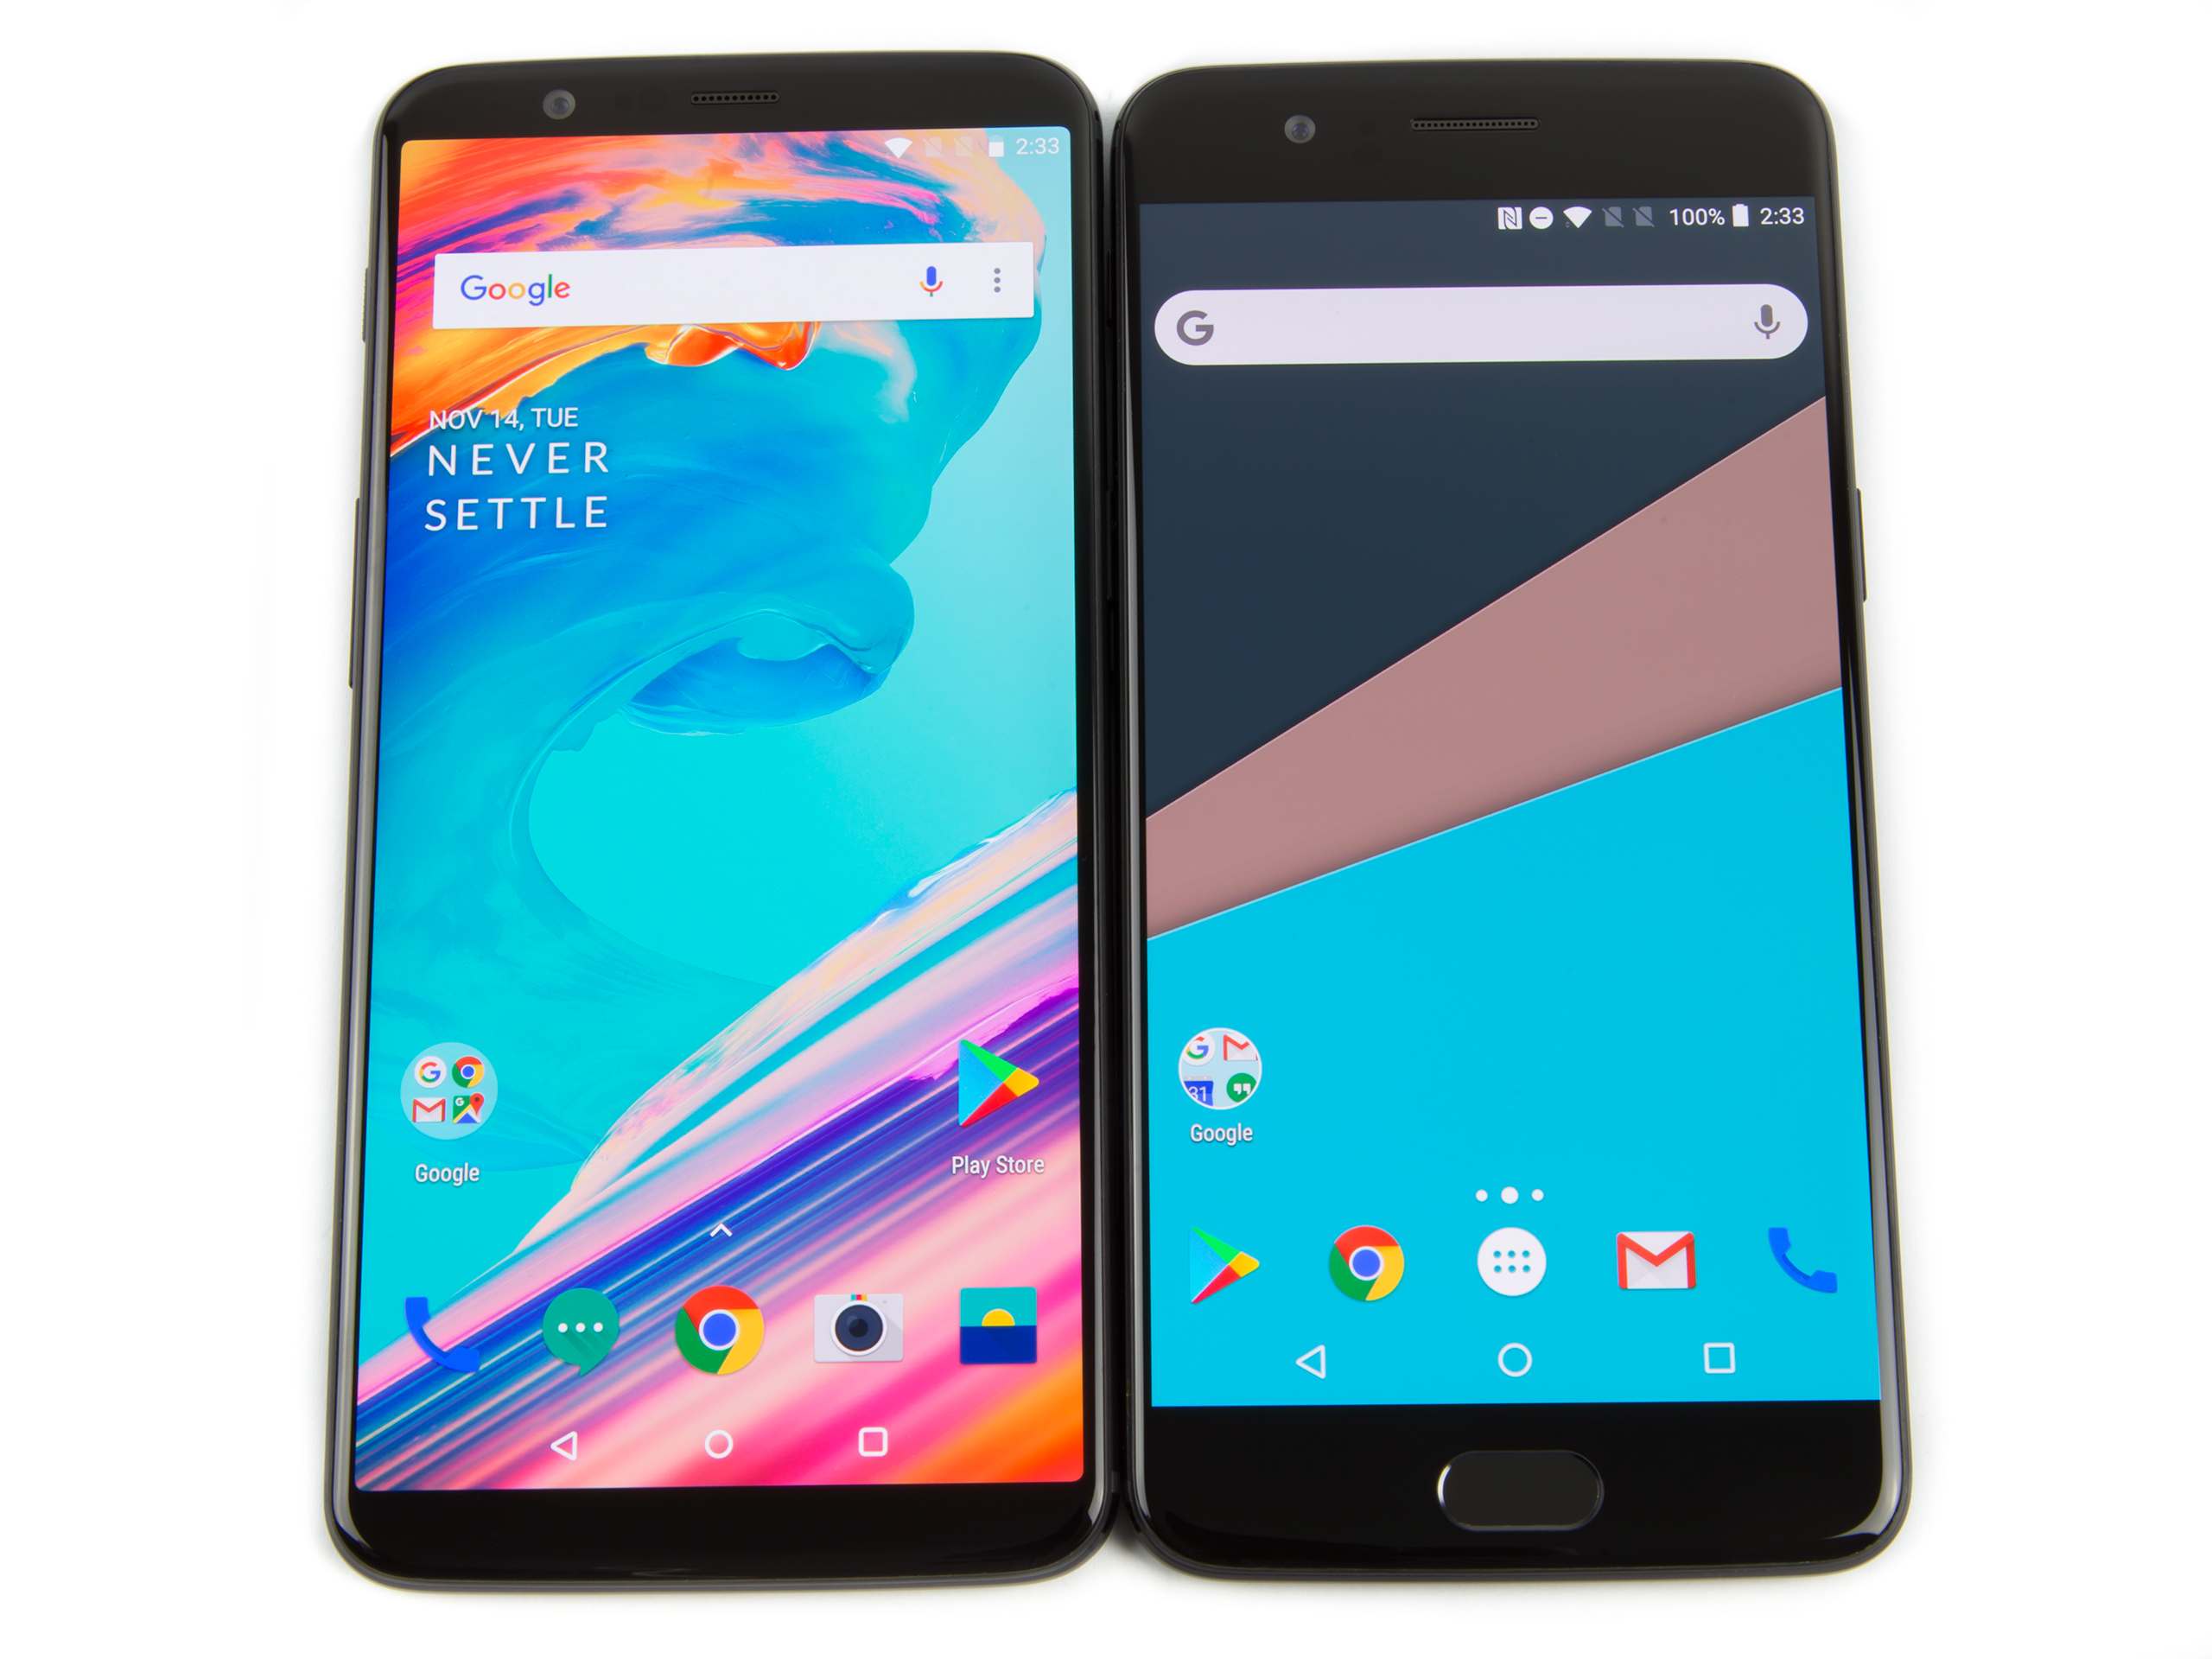 Enlarge Heres The T Left Compared To The Oneplus  Right Its A Big Improvement Packing More Screen Into The Same Size Body